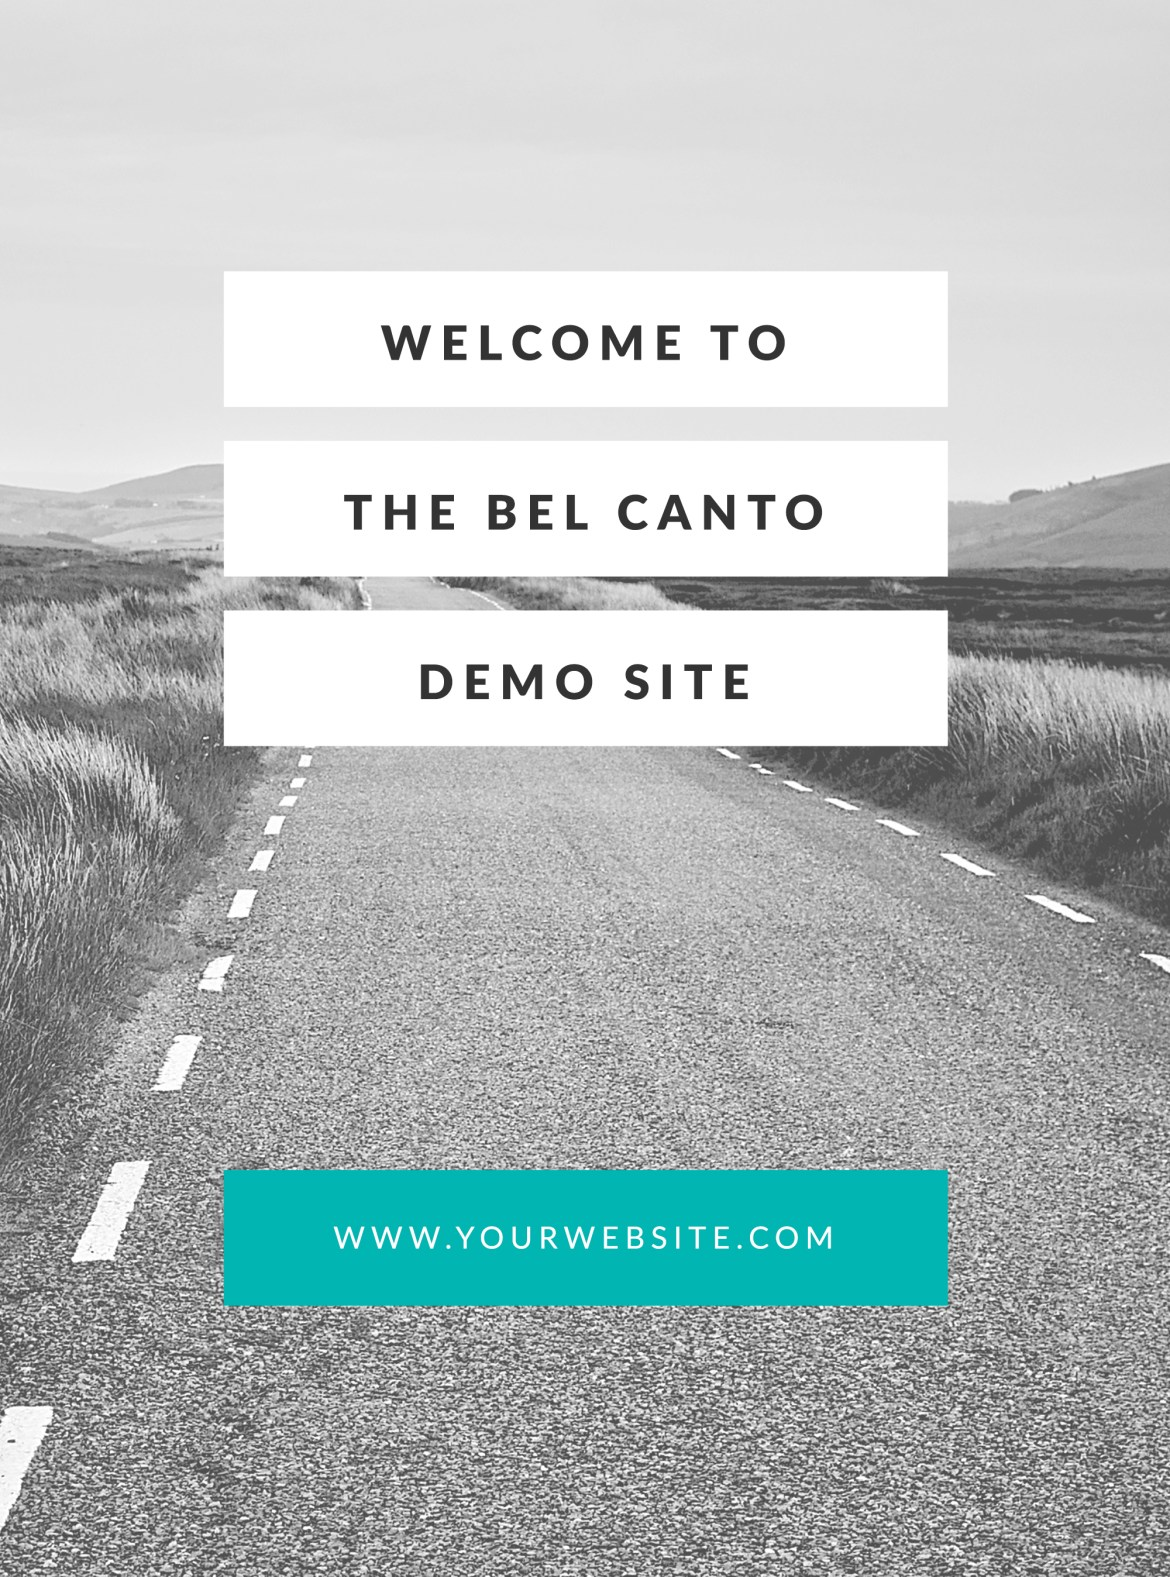 Welcome to the Bel Canto Demo